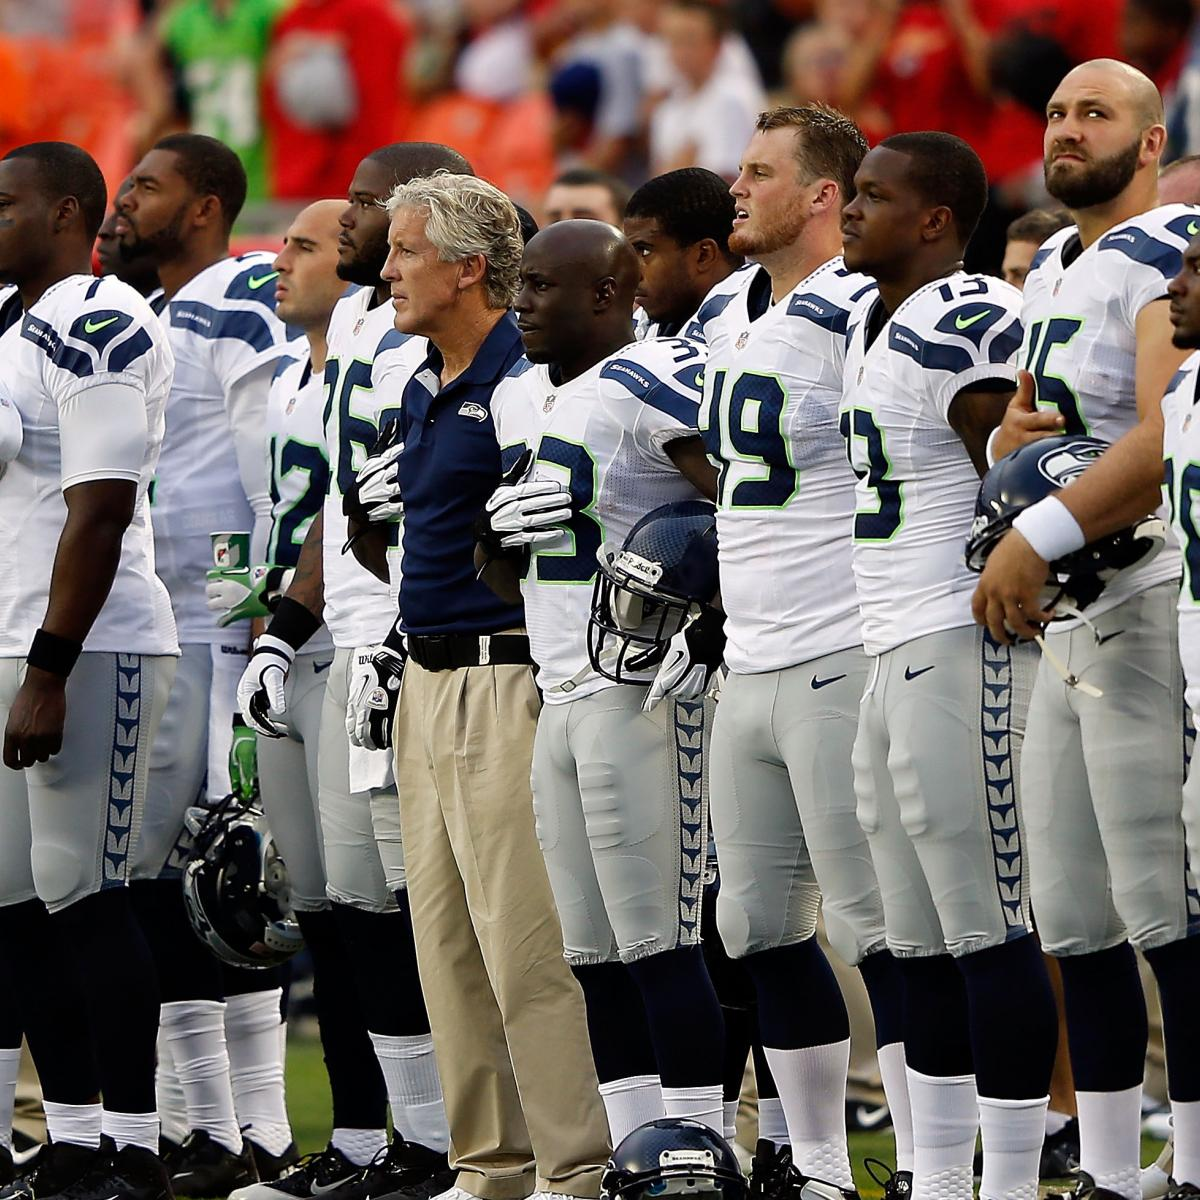 Seattle Seahawks Roster 2012: Latest News, Cuts and NFL